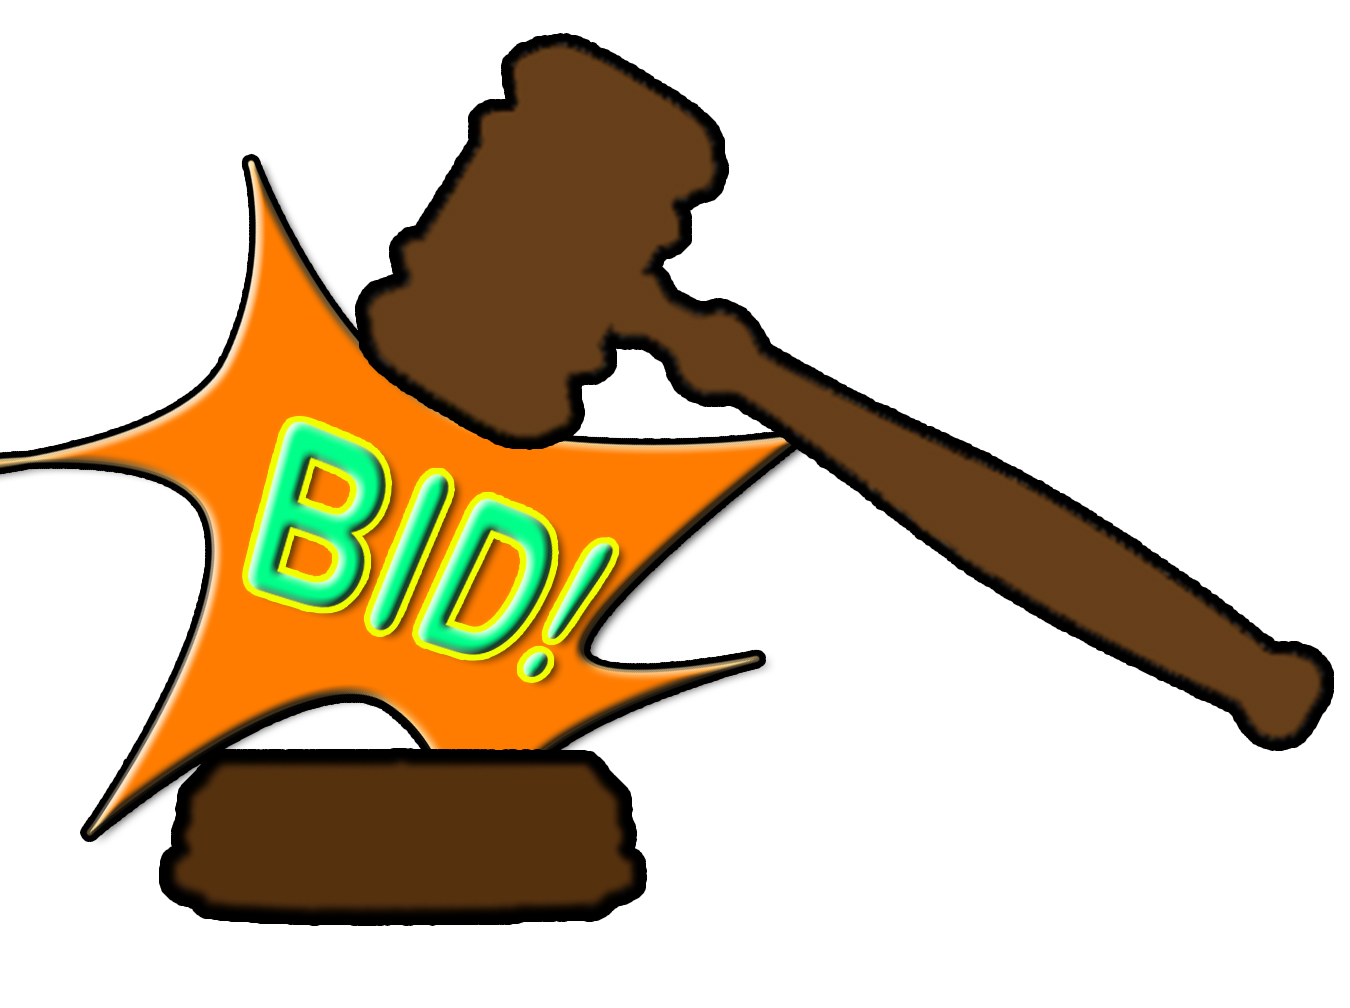 Neds service and silent auction april 22 2017 new for How to bid at a live auction